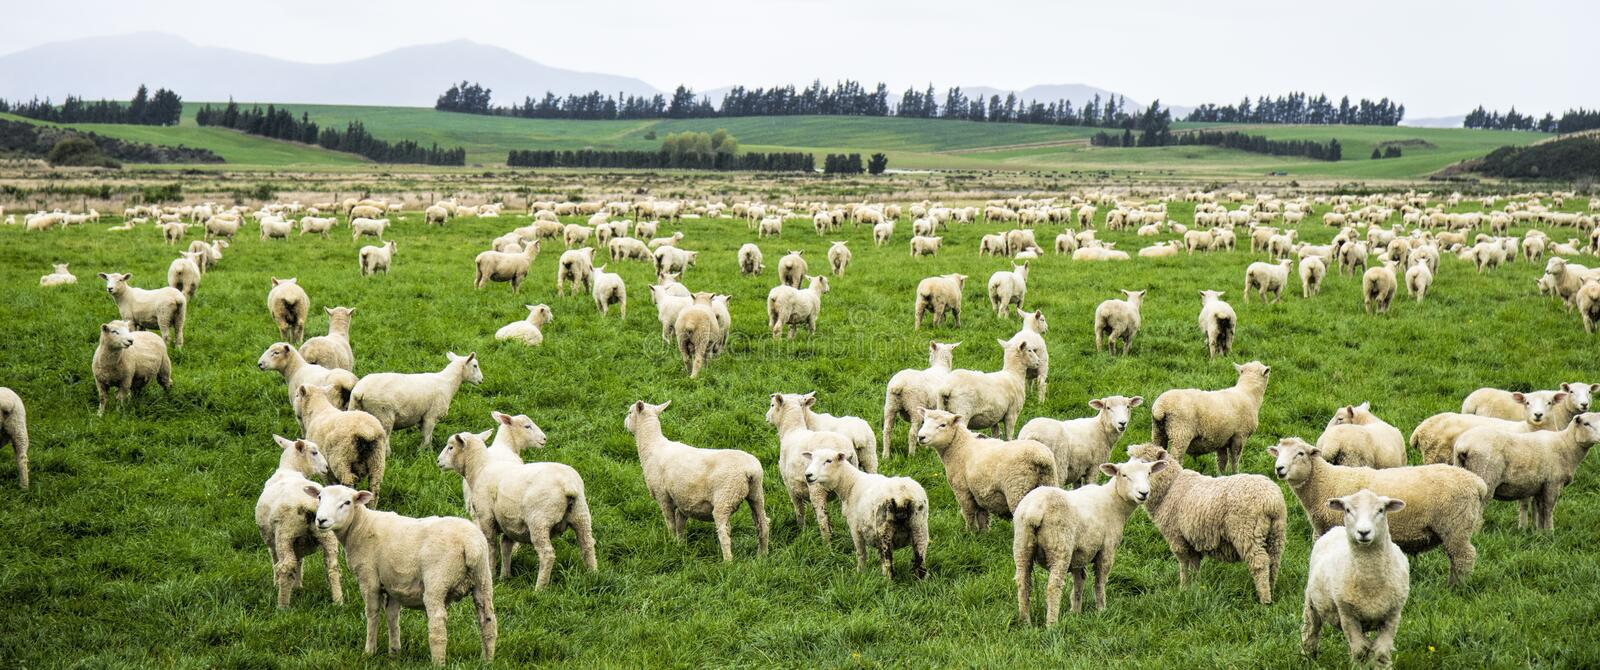 Large flock of newly shorn sheep stock image